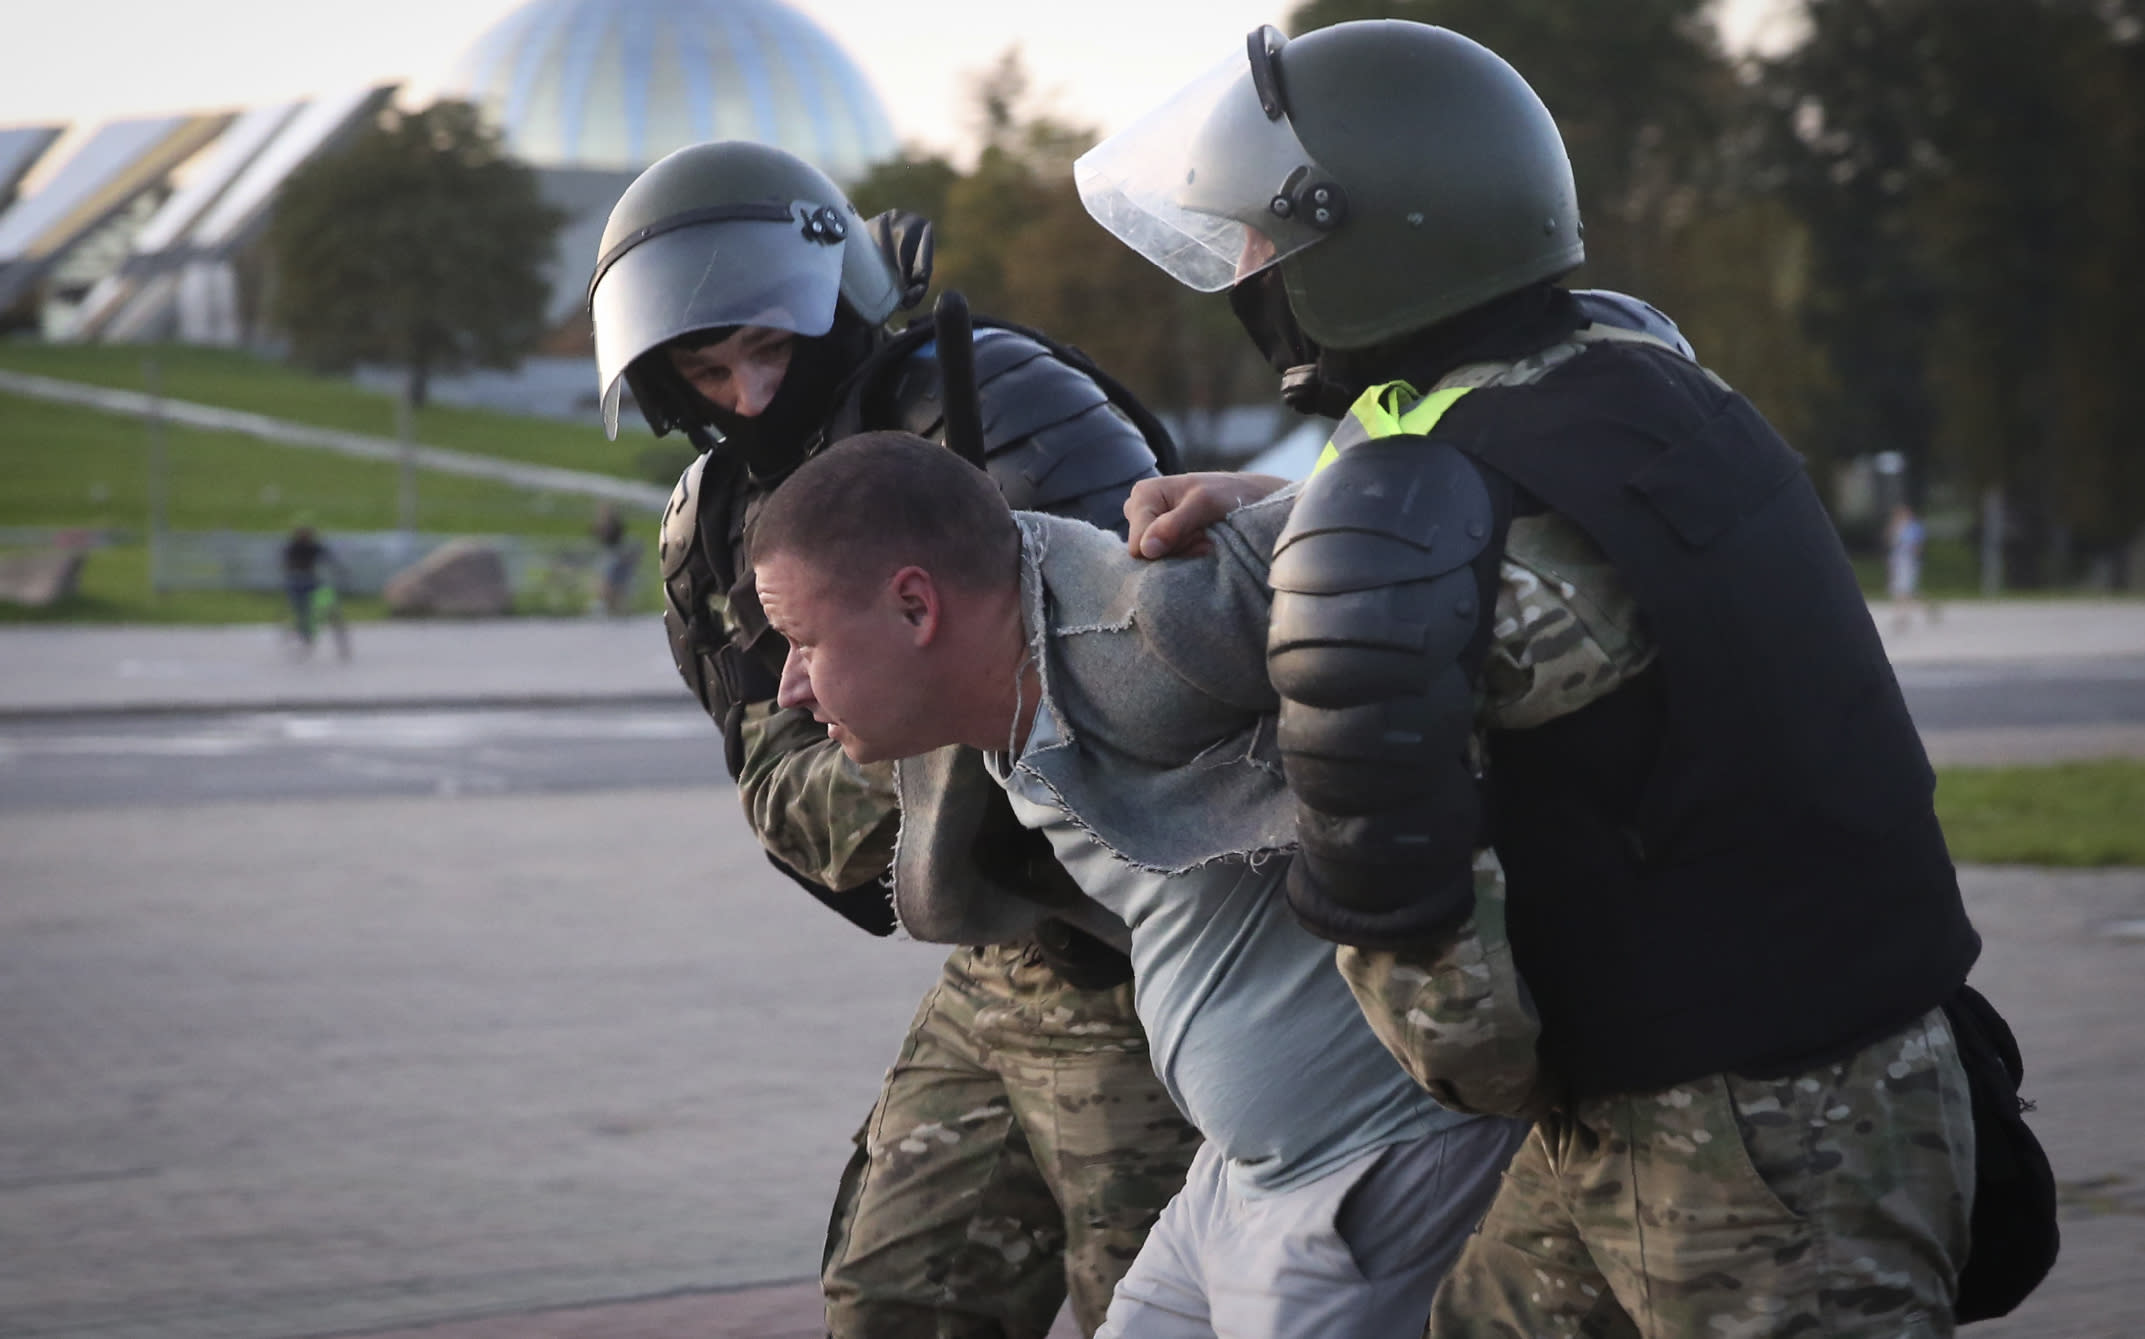 Riot police detain a protester during an opposition rally to protest the presidential inauguration in Minsk, Belarus, Wednesday, Sept. 23, 2020. Belarus President Alexander Lukashenko has been sworn in to his sixth term in office at an inaugural ceremony that was not announced in advance amid weeks of huge protests saying the authoritarian leader's reelection was rigged. Hundreds took to the streets in several cities in the evening to protest the inauguration. (AP Photo/TUT.by)